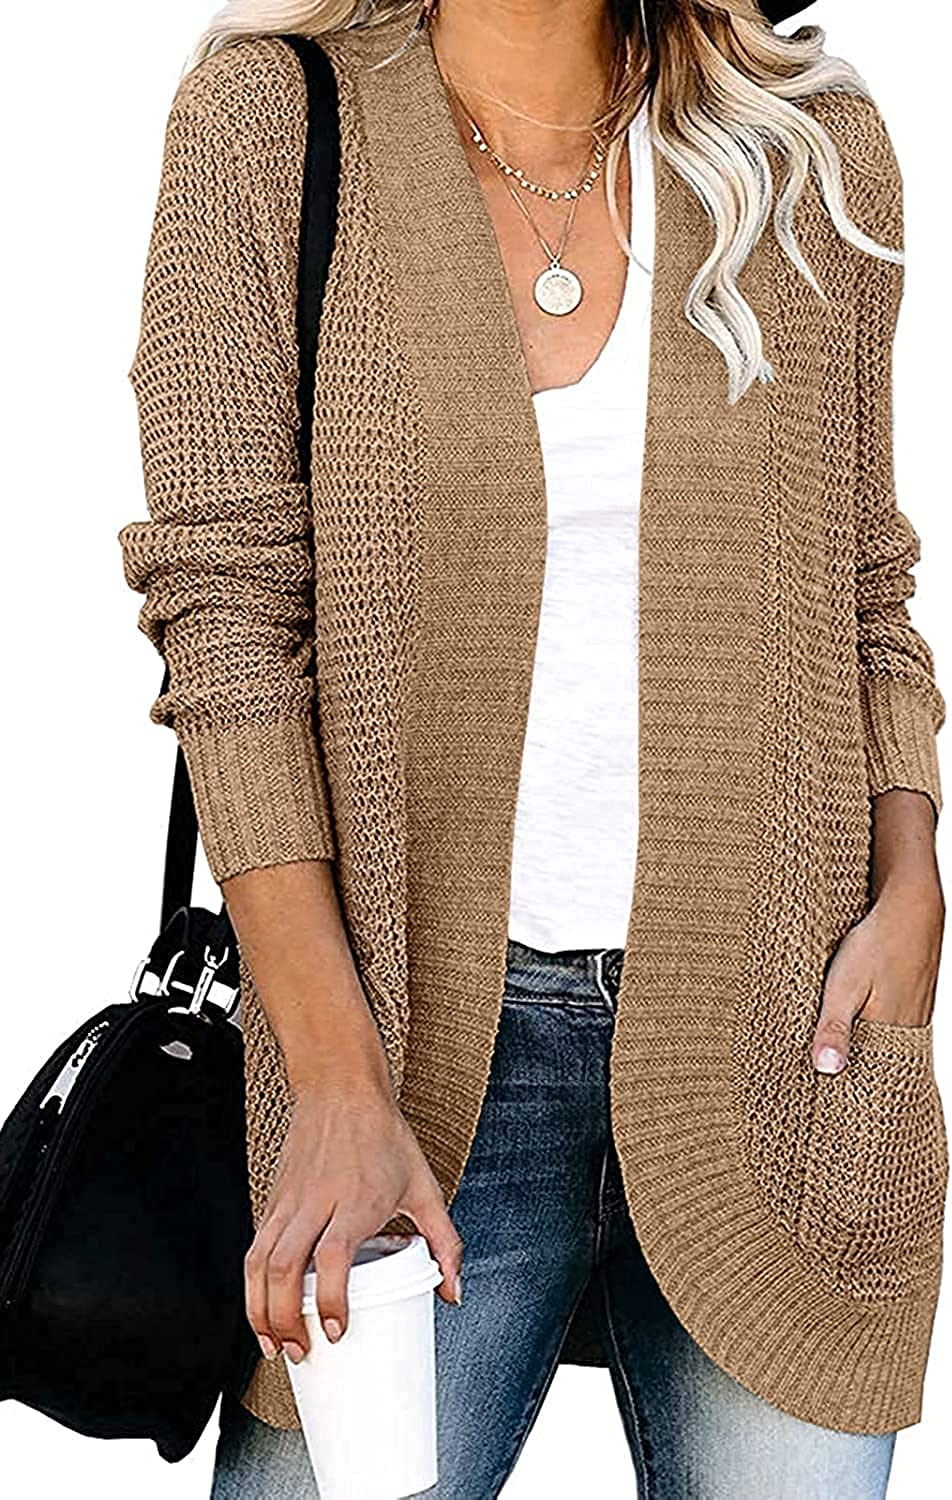 ZOCANIA Women's Long Sleeve Open Front Casual Lightweight Soft Knit Cardigan Sweater Outerwear with Pockets